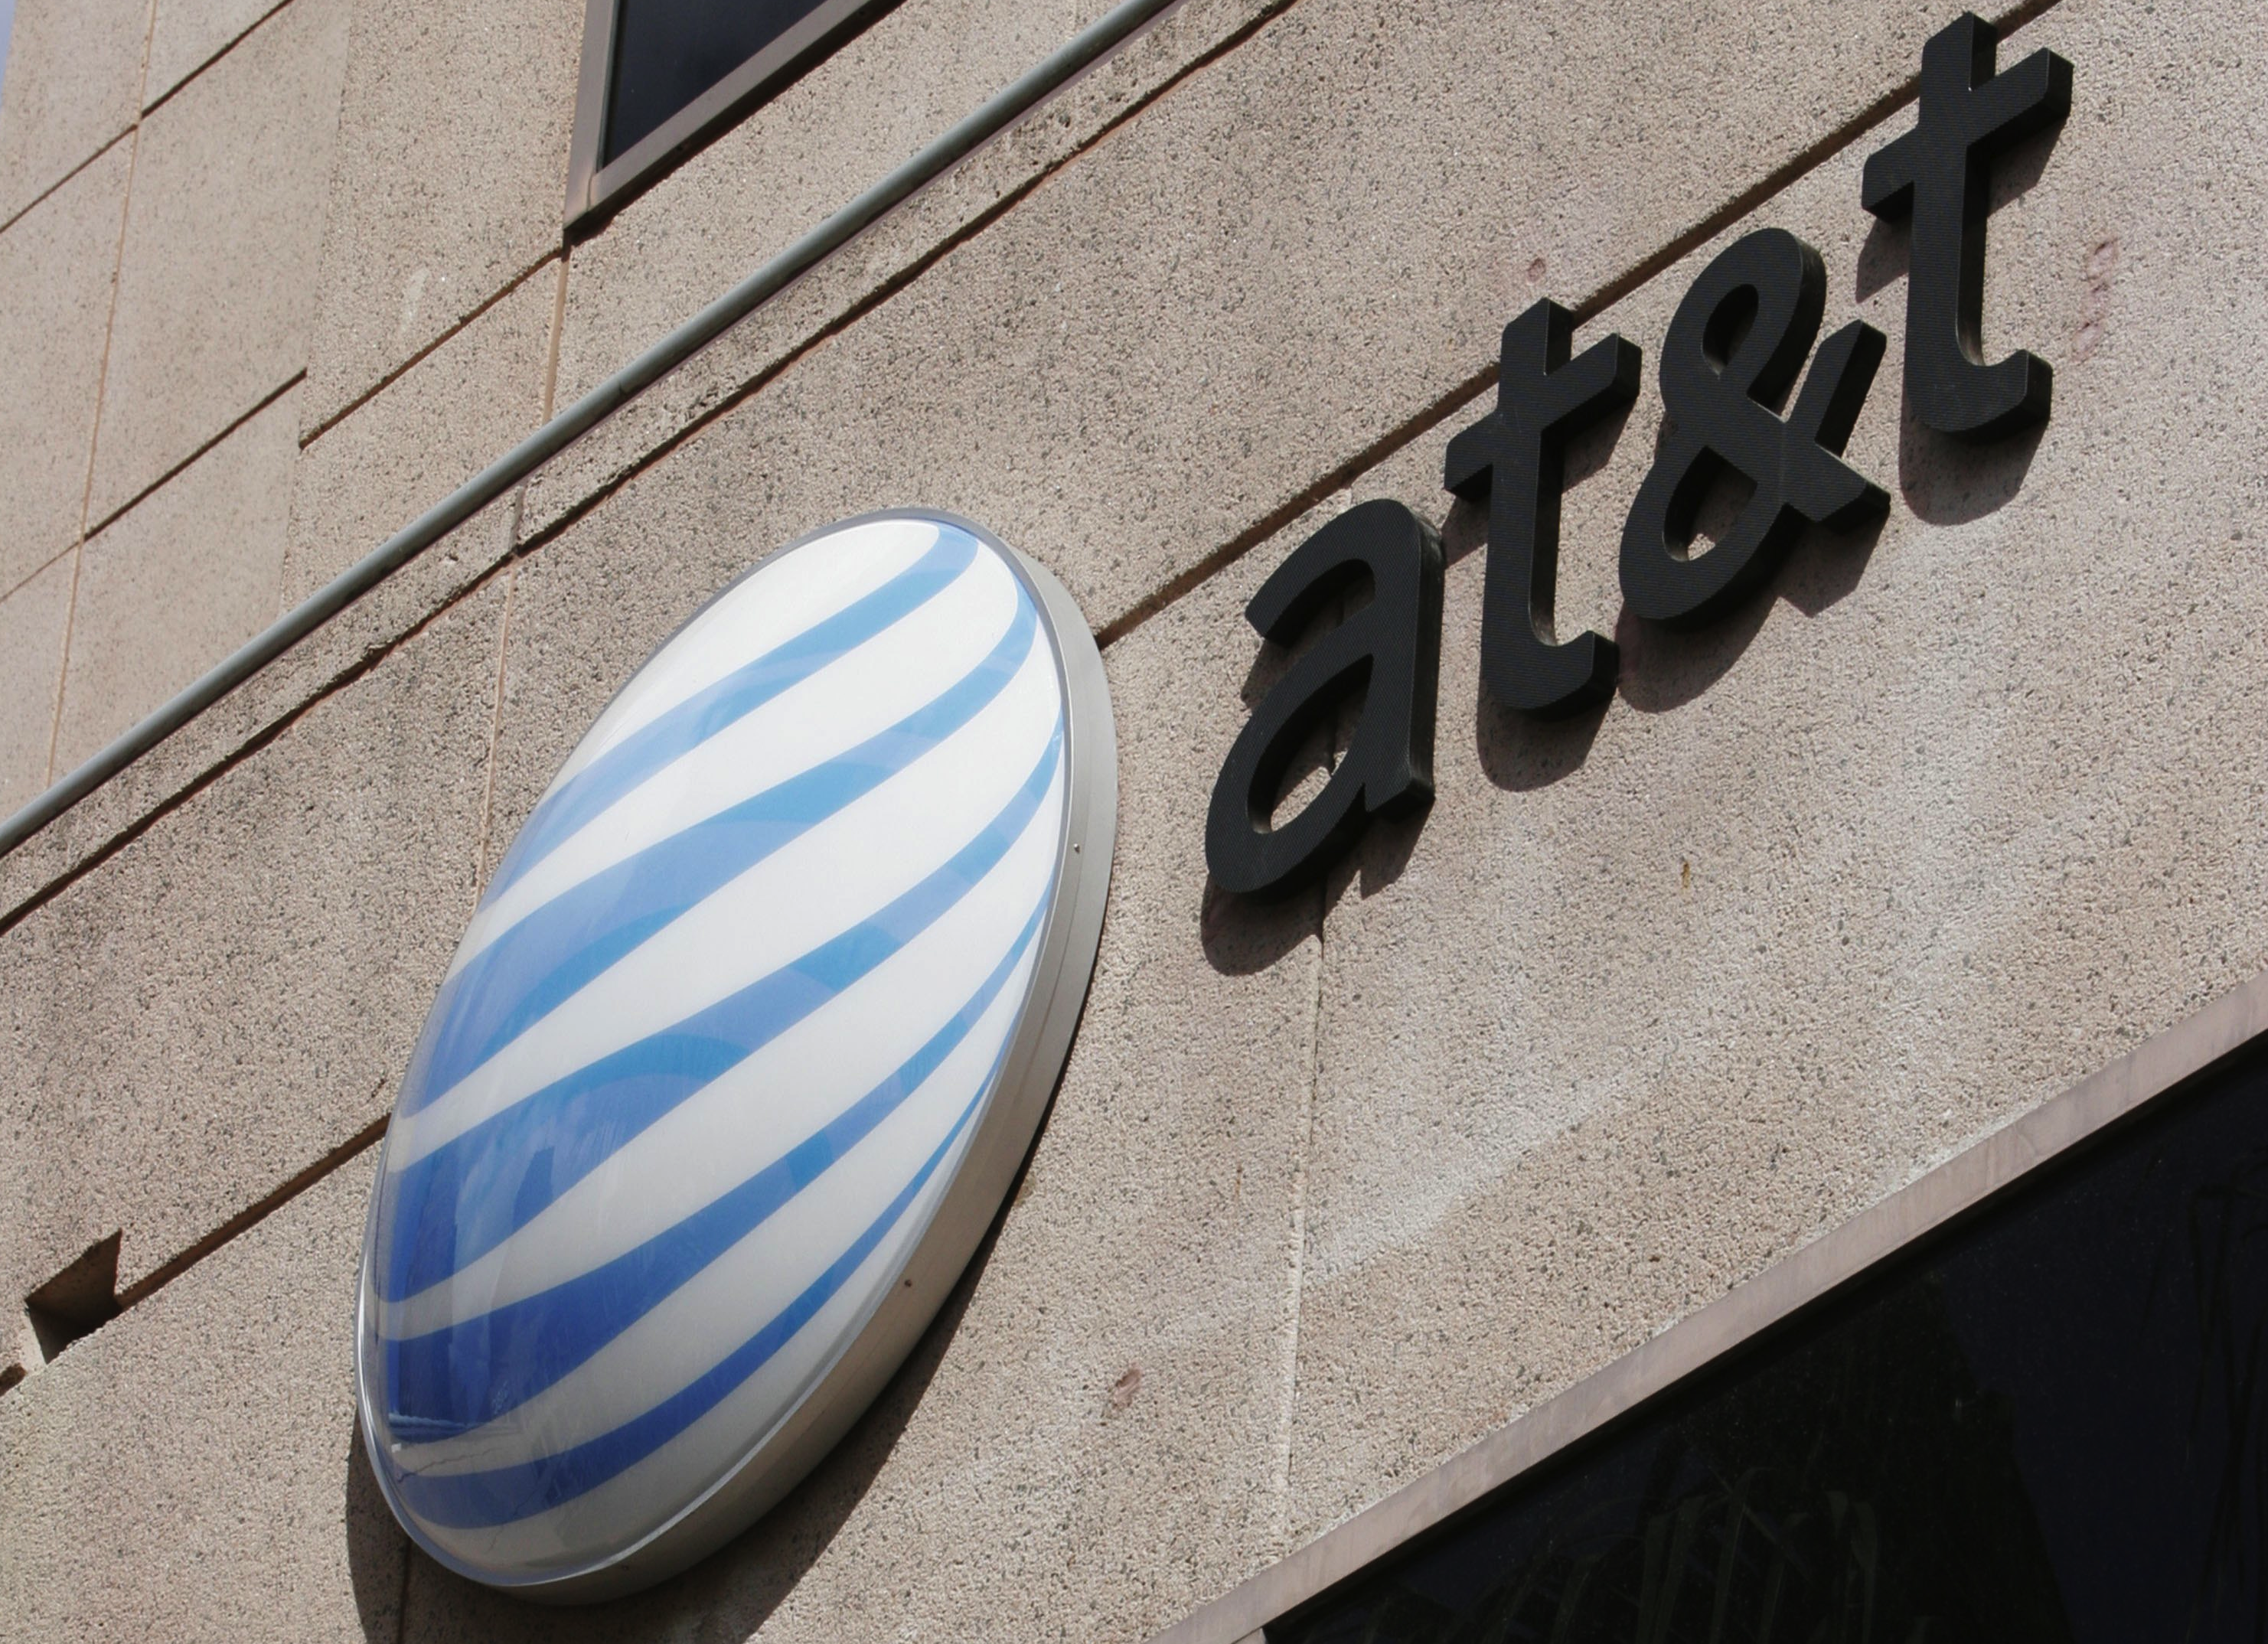 """The National Security Agency entered into """"collection partnerships"""" with a pair of telecommunications companies that permitted tapping their fiber links. Evidence suggests it's AT&T and Verizon."""